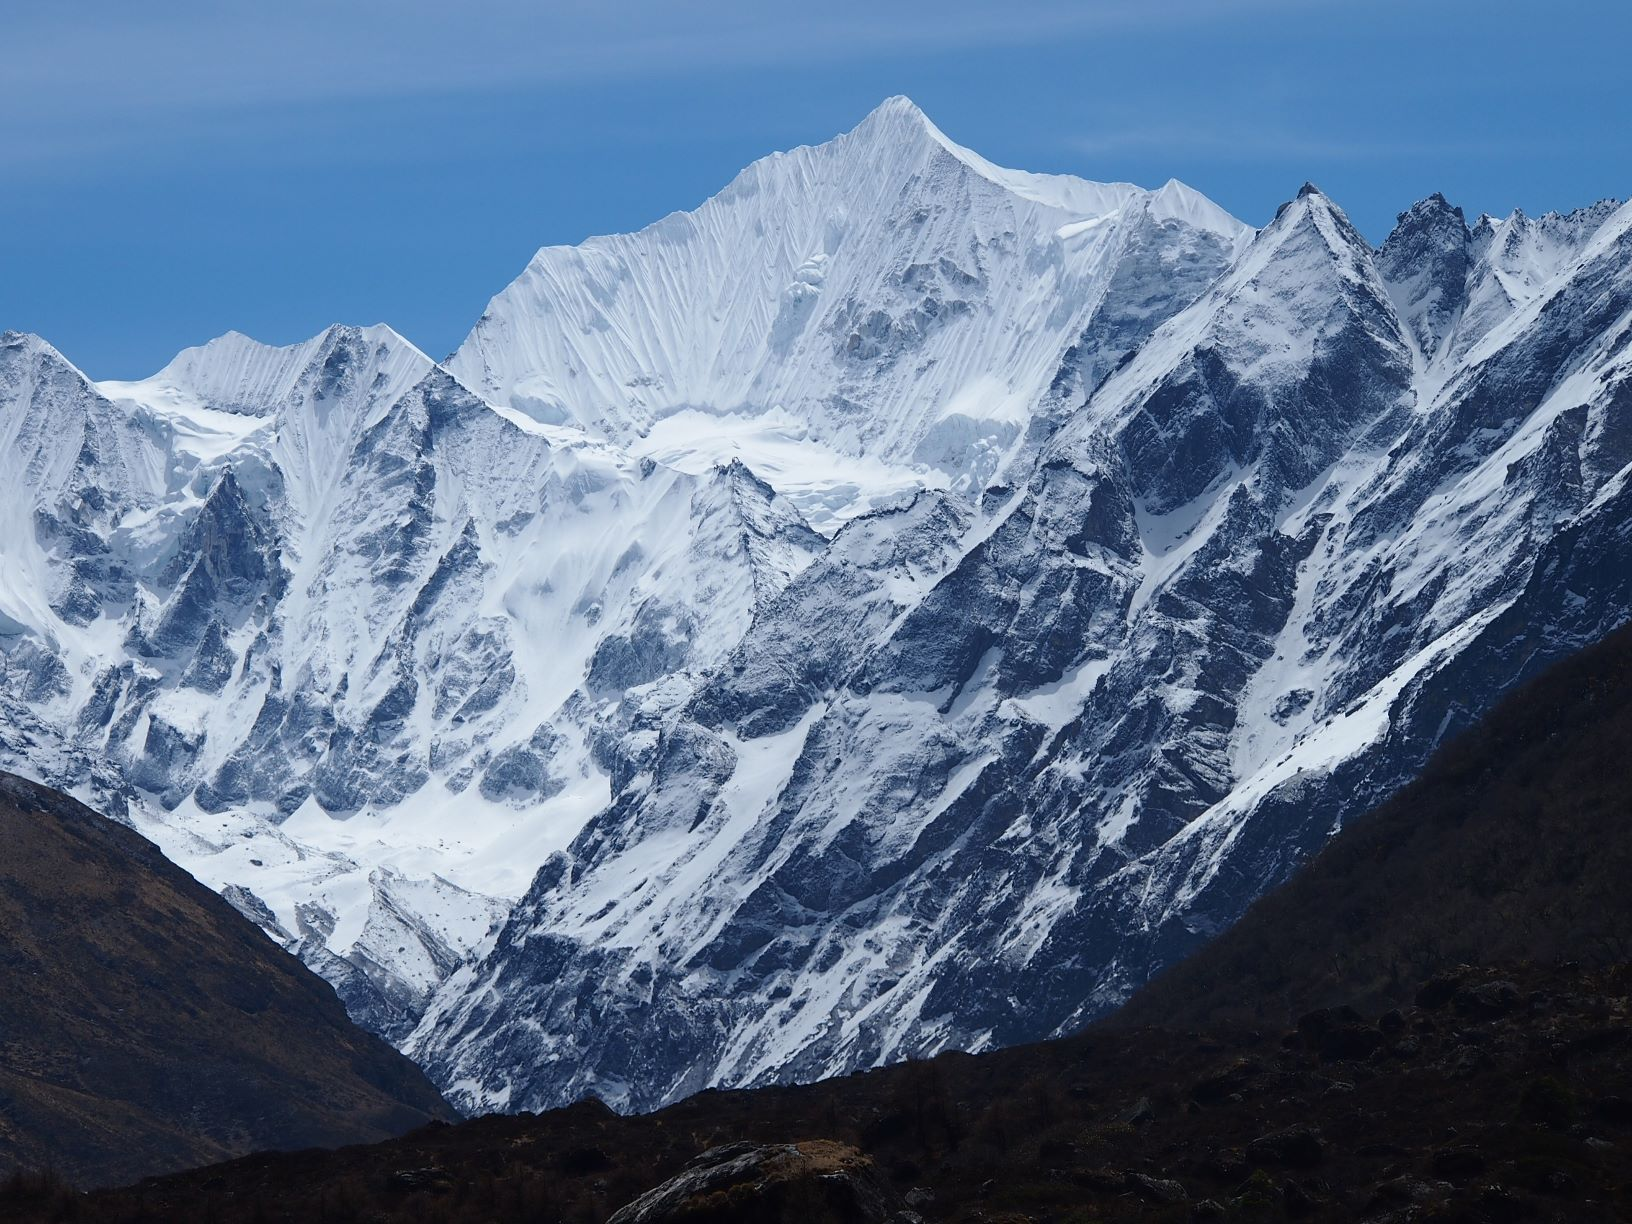 5 Reasons You Should Go Trekking in Nepal (Even if You Think You Don't Want to)